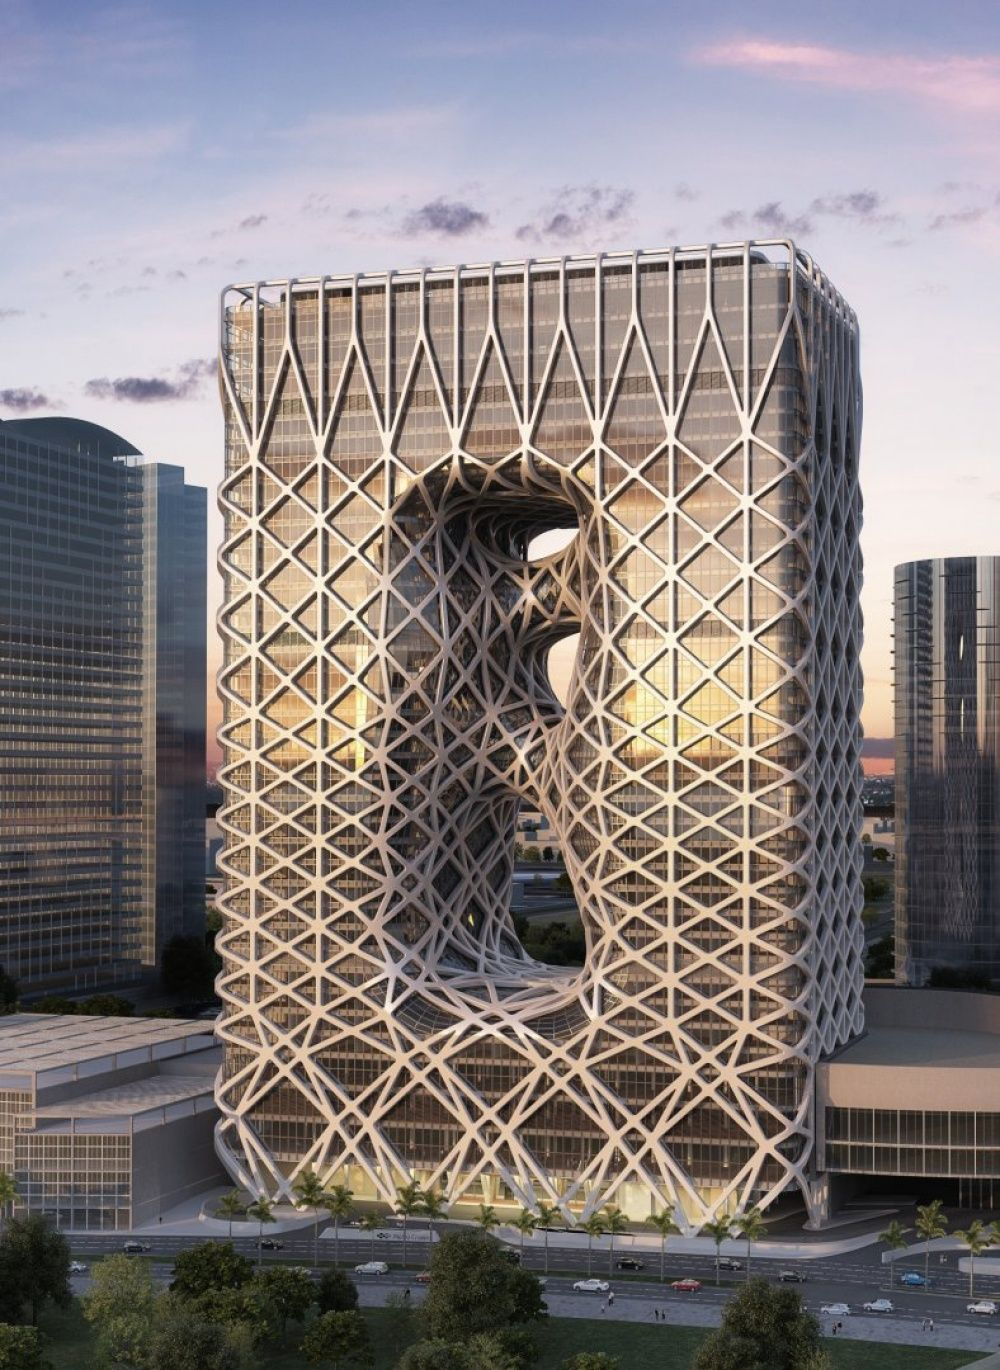 Ten incredible buildings which the world will soon see